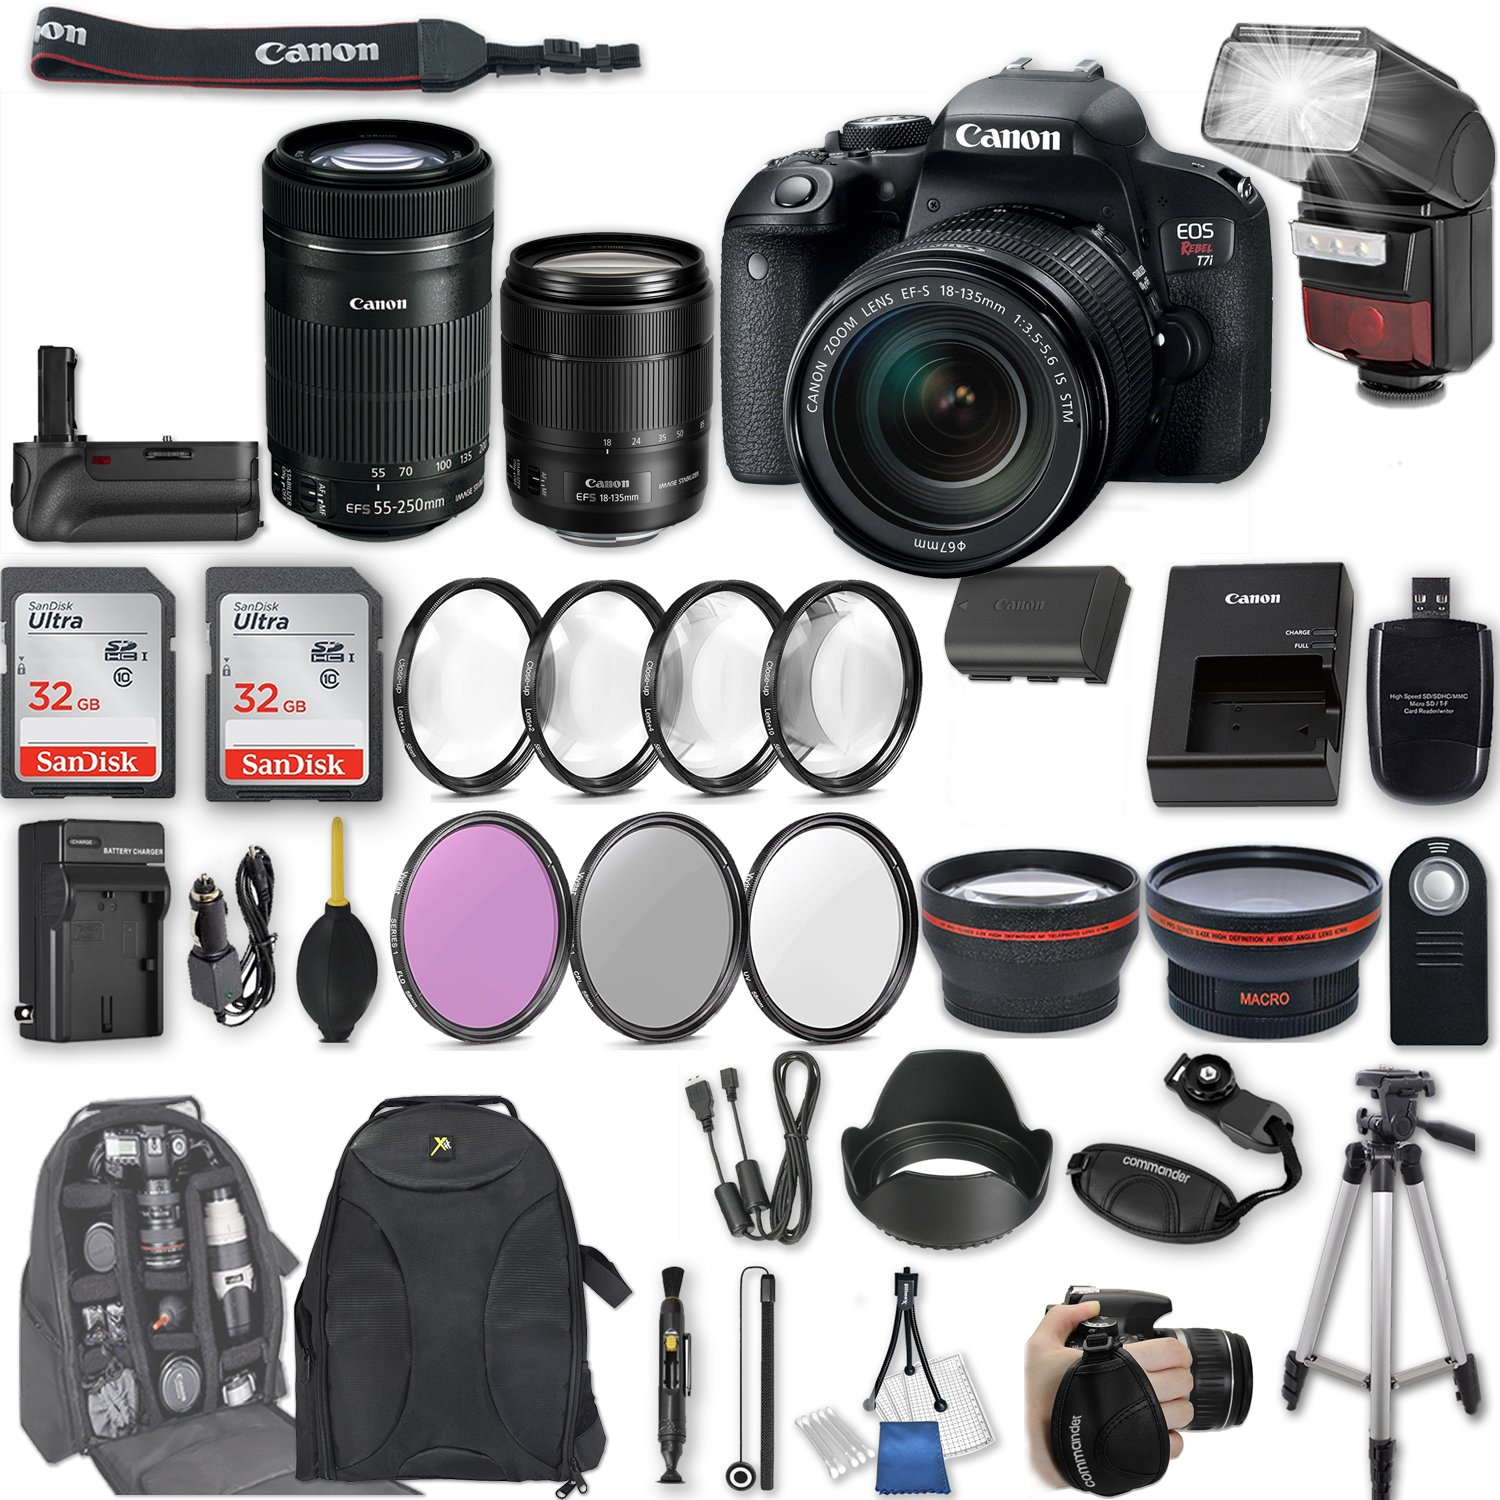 Canon EOS Rebel T7i DSLR Camera with EF-S 18-135mm f/3.5-5.6 IS STM Lens + EF-S 55-250mm f/4-5.6 IS STM Lens + Battery Grip + Automatic Flash + 64 GB Sandisk SD Memory + Filter & Macro Kits + More by Canon